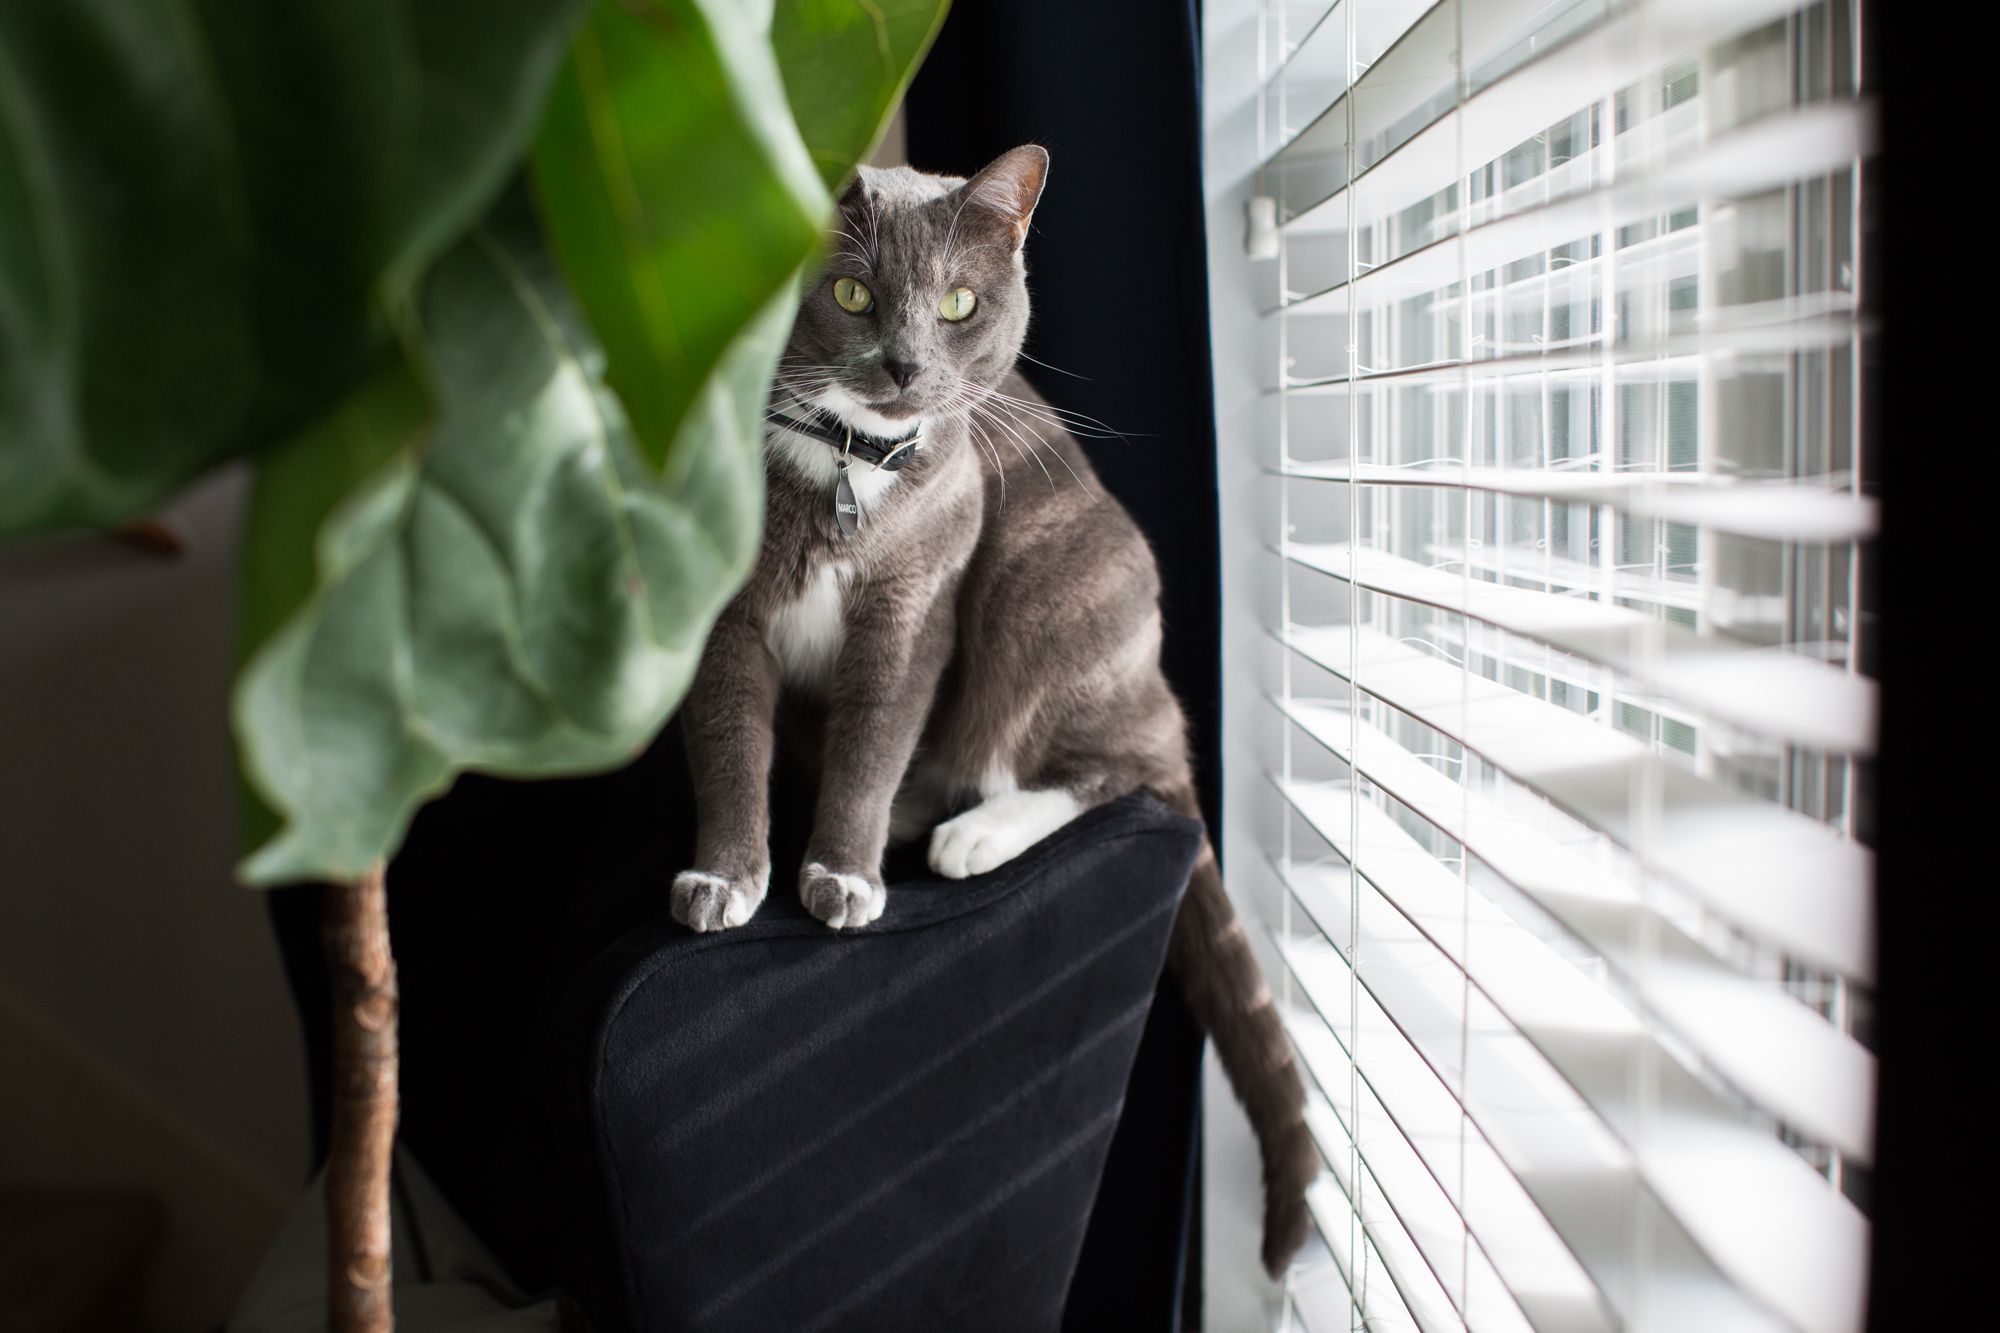 How To Make A Small Apartment More Fun For Your Cat Cat Care Cat Diy Cat Playground Outdoor